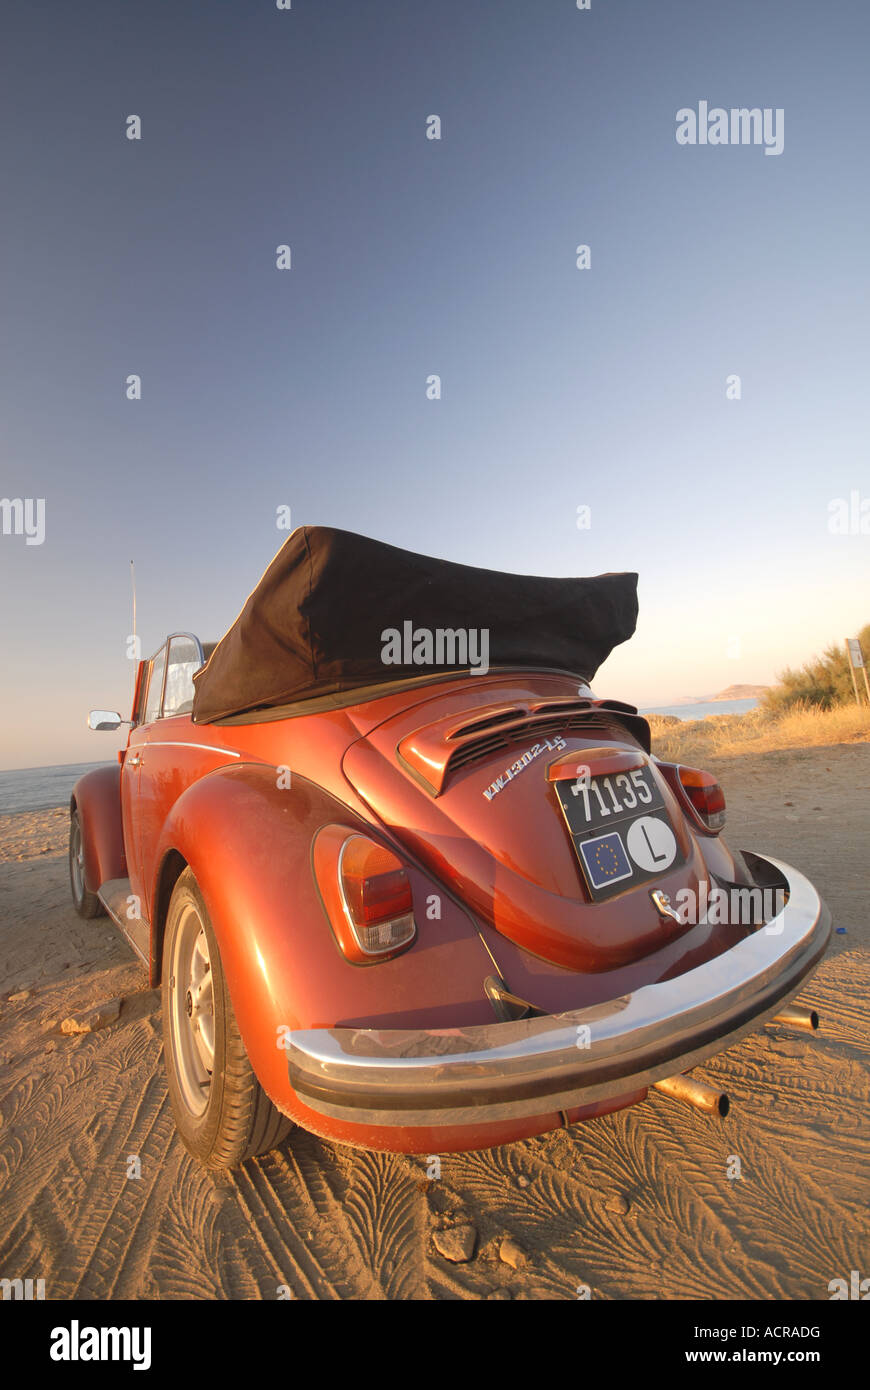 A shiny orange-red convertible Volkswagen Beetle on the beach. 2007. - Stock Image